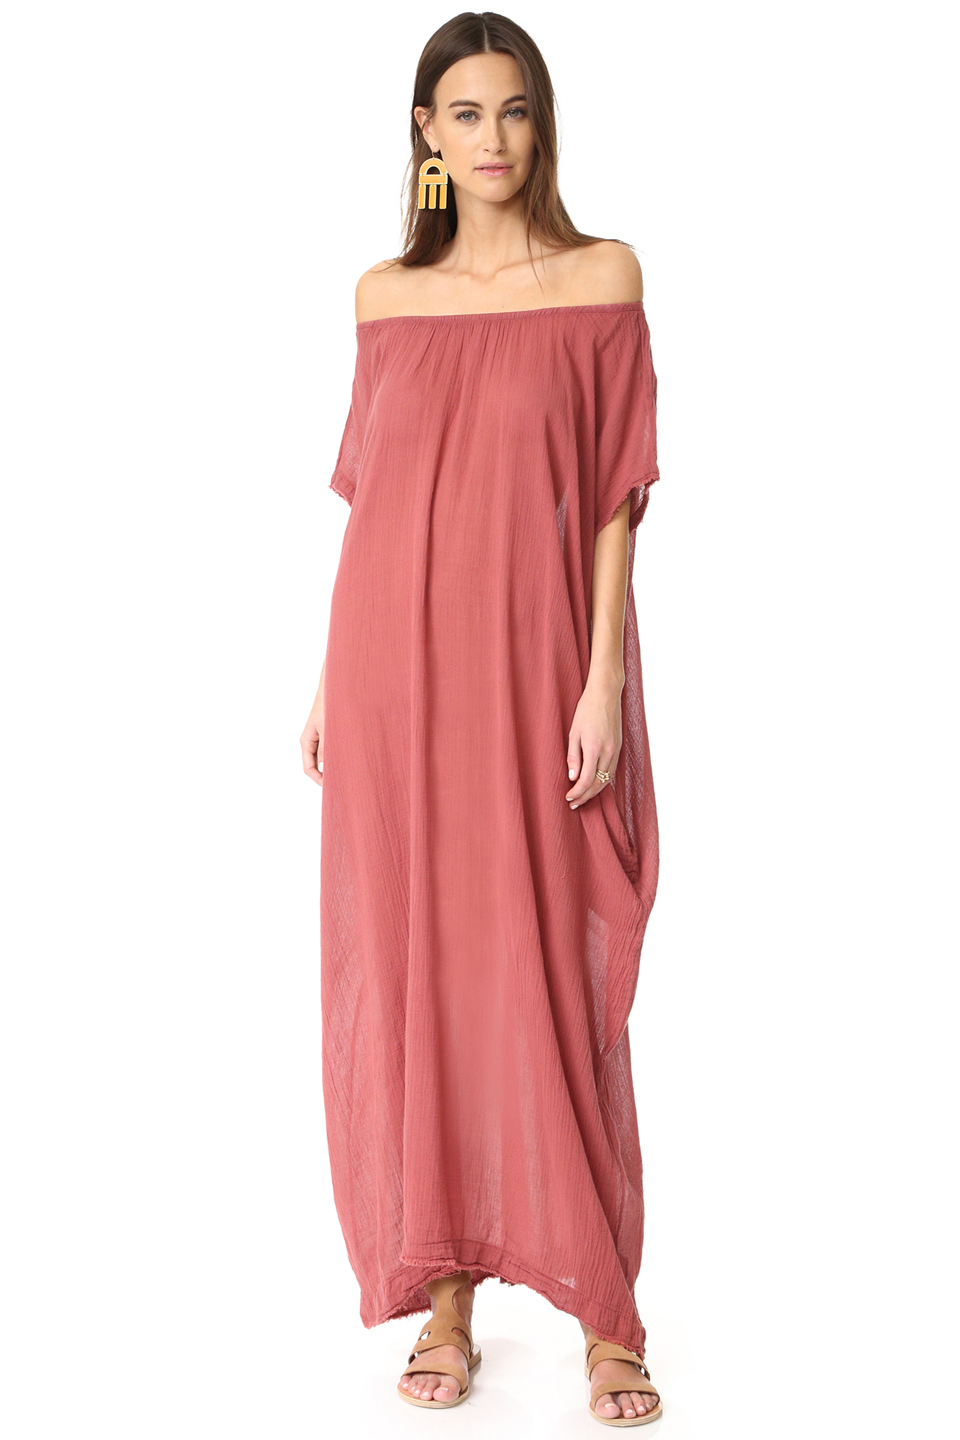 Moonstone off shoulder caftan - coppertone